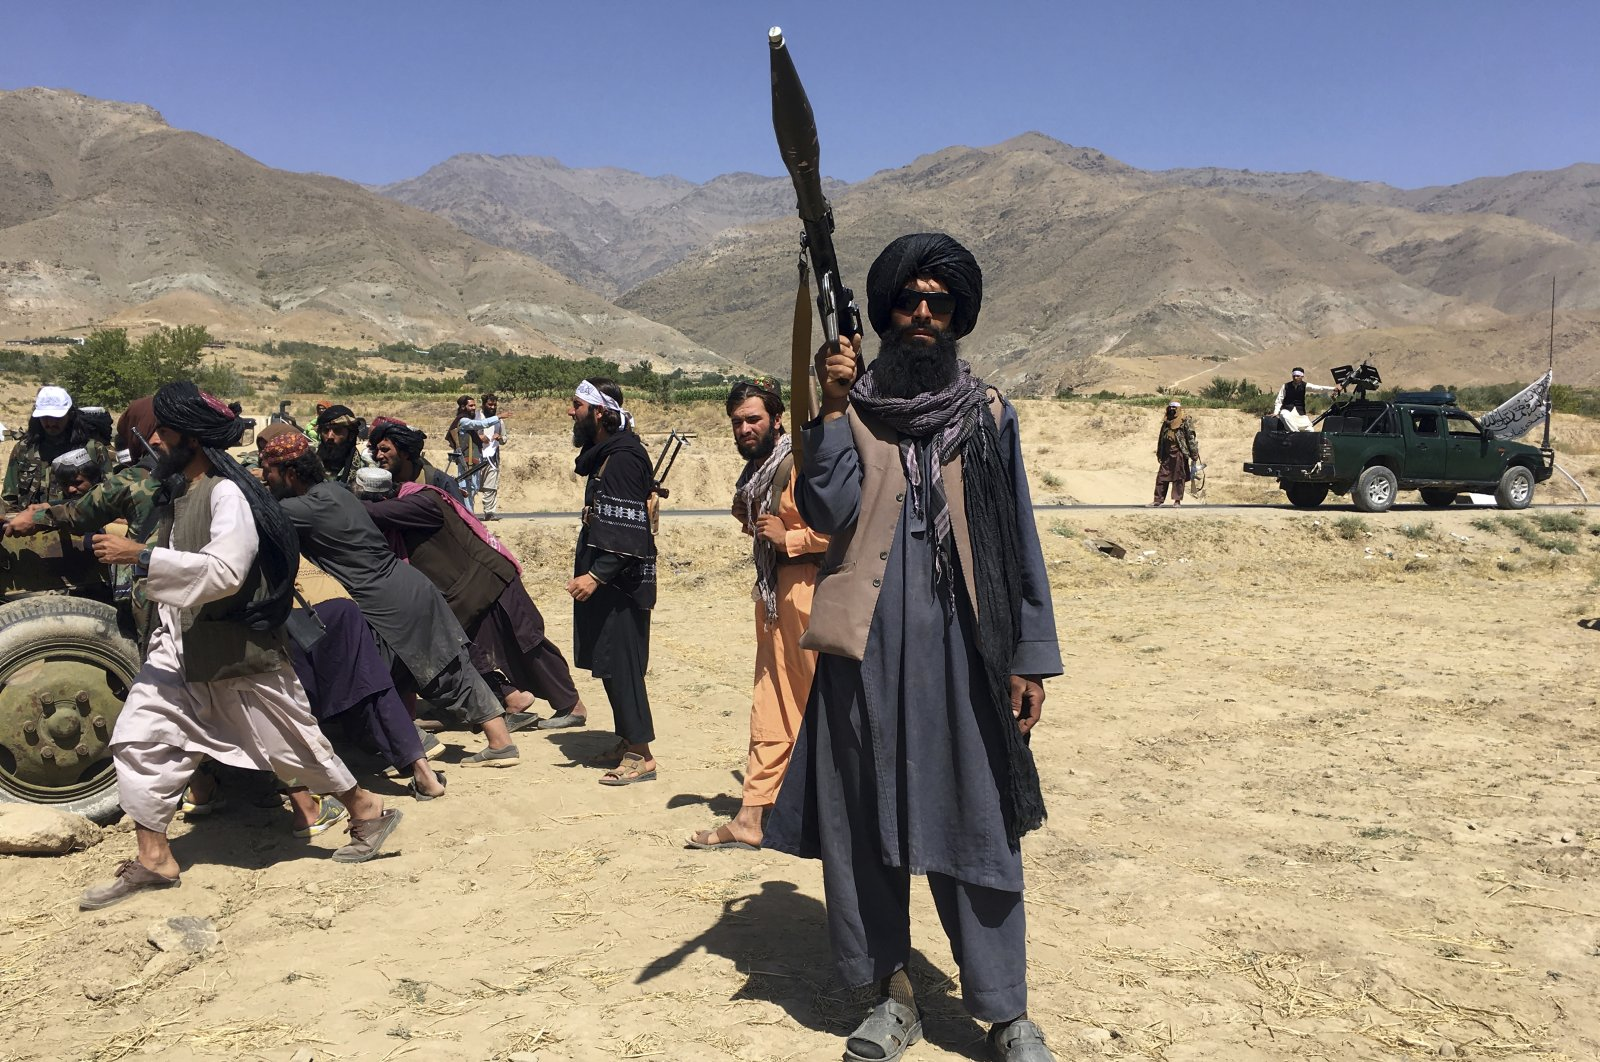 Taliban soldiers stand guard in Panjshir province, northeastern Afghanistan, Sept. 8, 2021. (AP Photo)